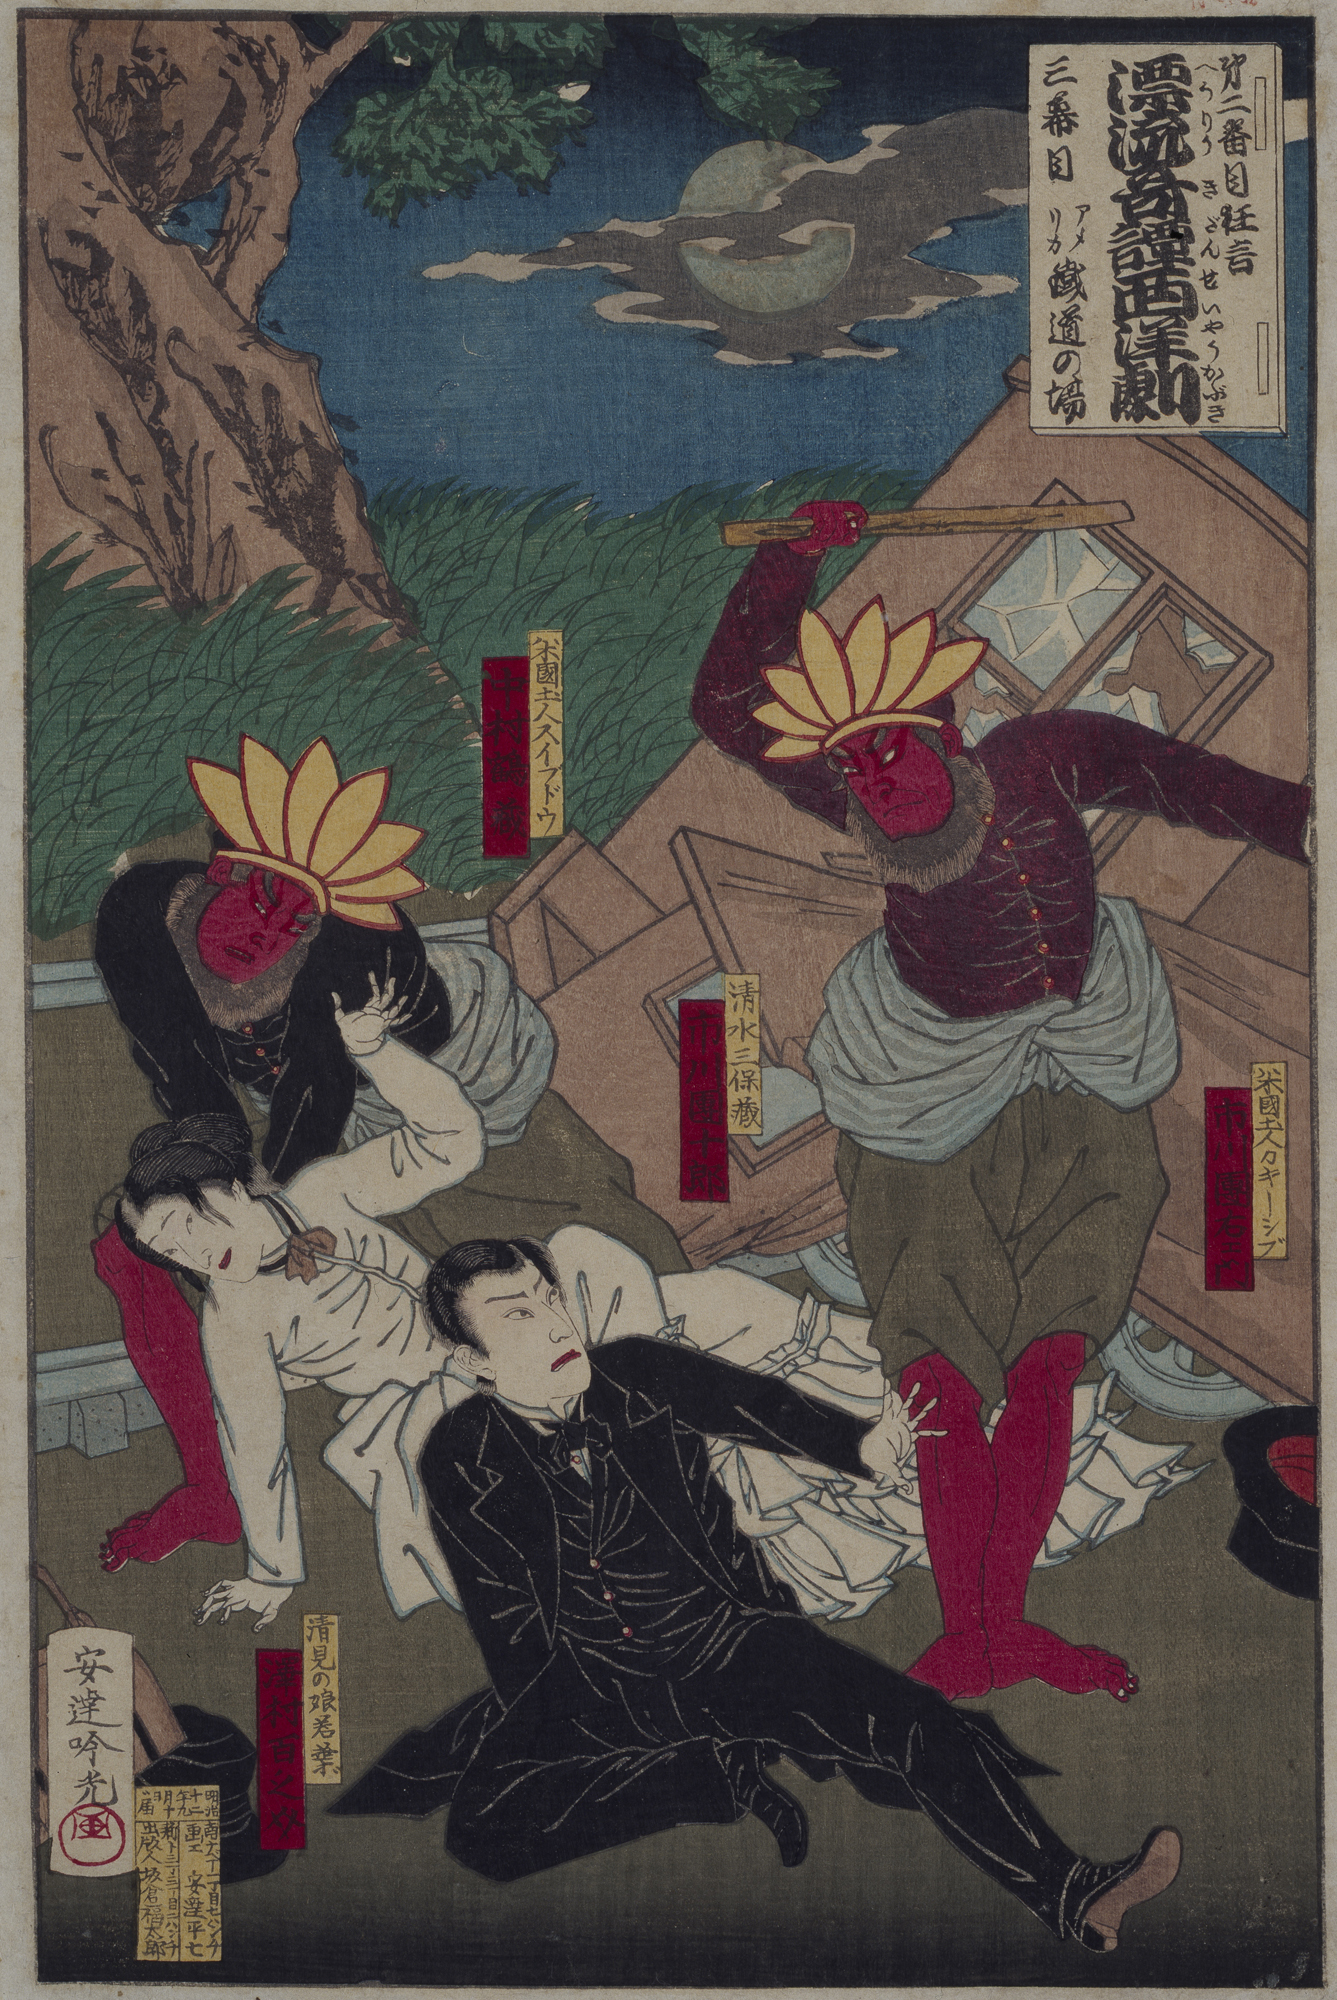 Japanese, Meiji period, 1868–1912, Adachi Ginkō, active 1874–1897: The Strange Tale of the Castaways: a Western Kabuki (Hyōryū kidon yōkabuki), Act two, scene three, 1879 (2006-33). Photo: Bruce M. White